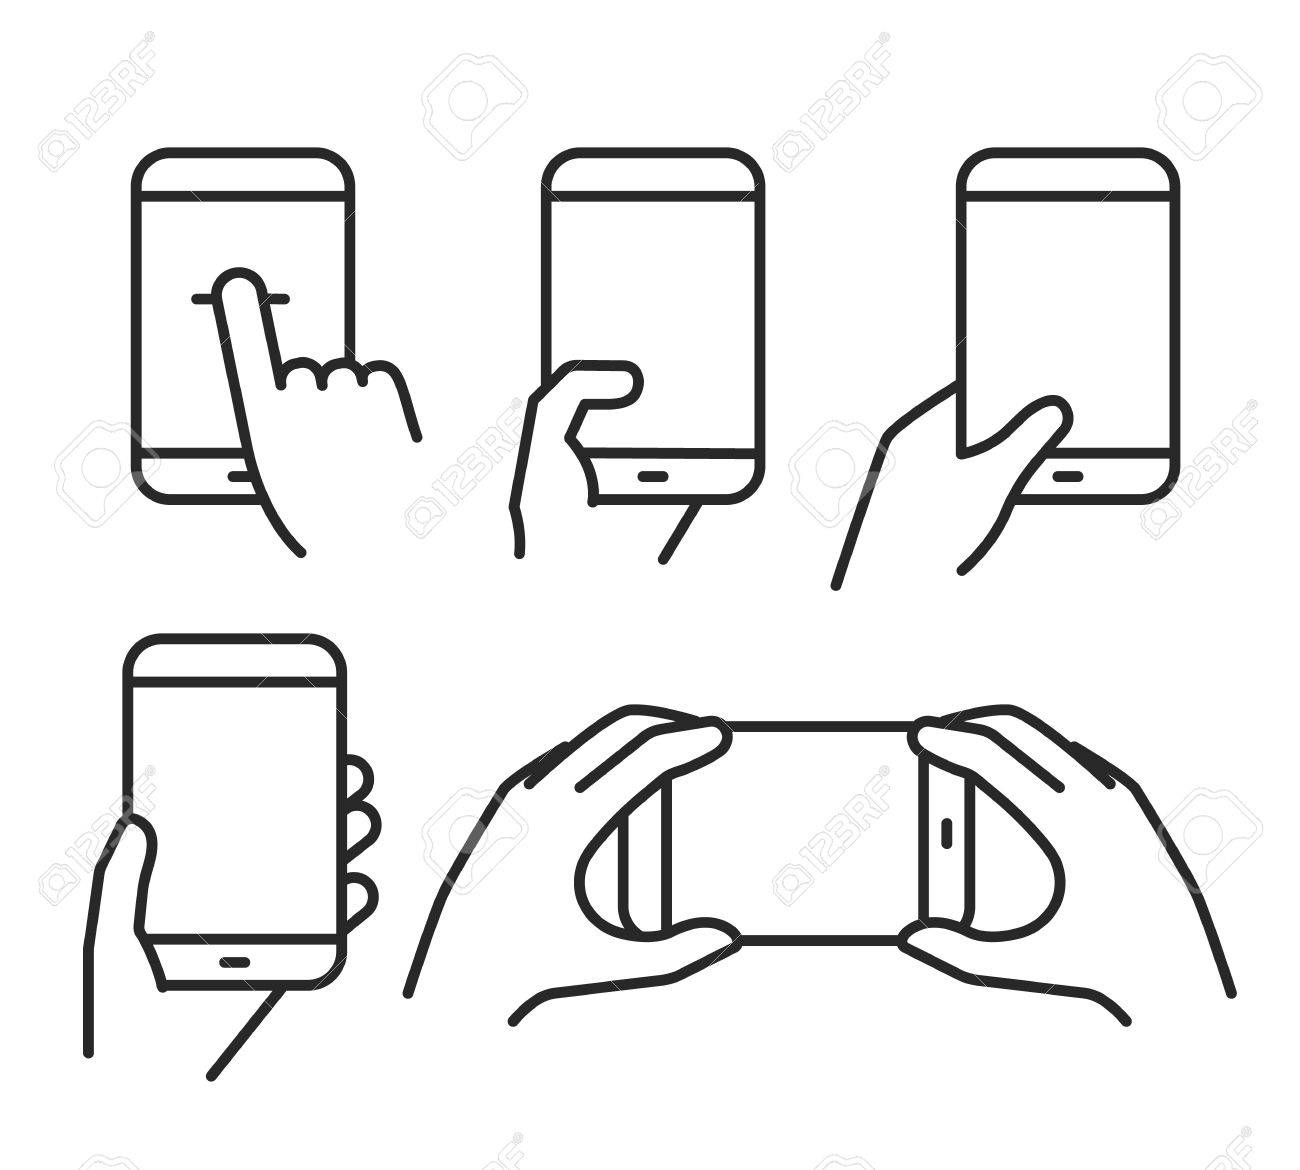 Different variations of holding a modern smartphone. Lineart pictograms collection - 53605975